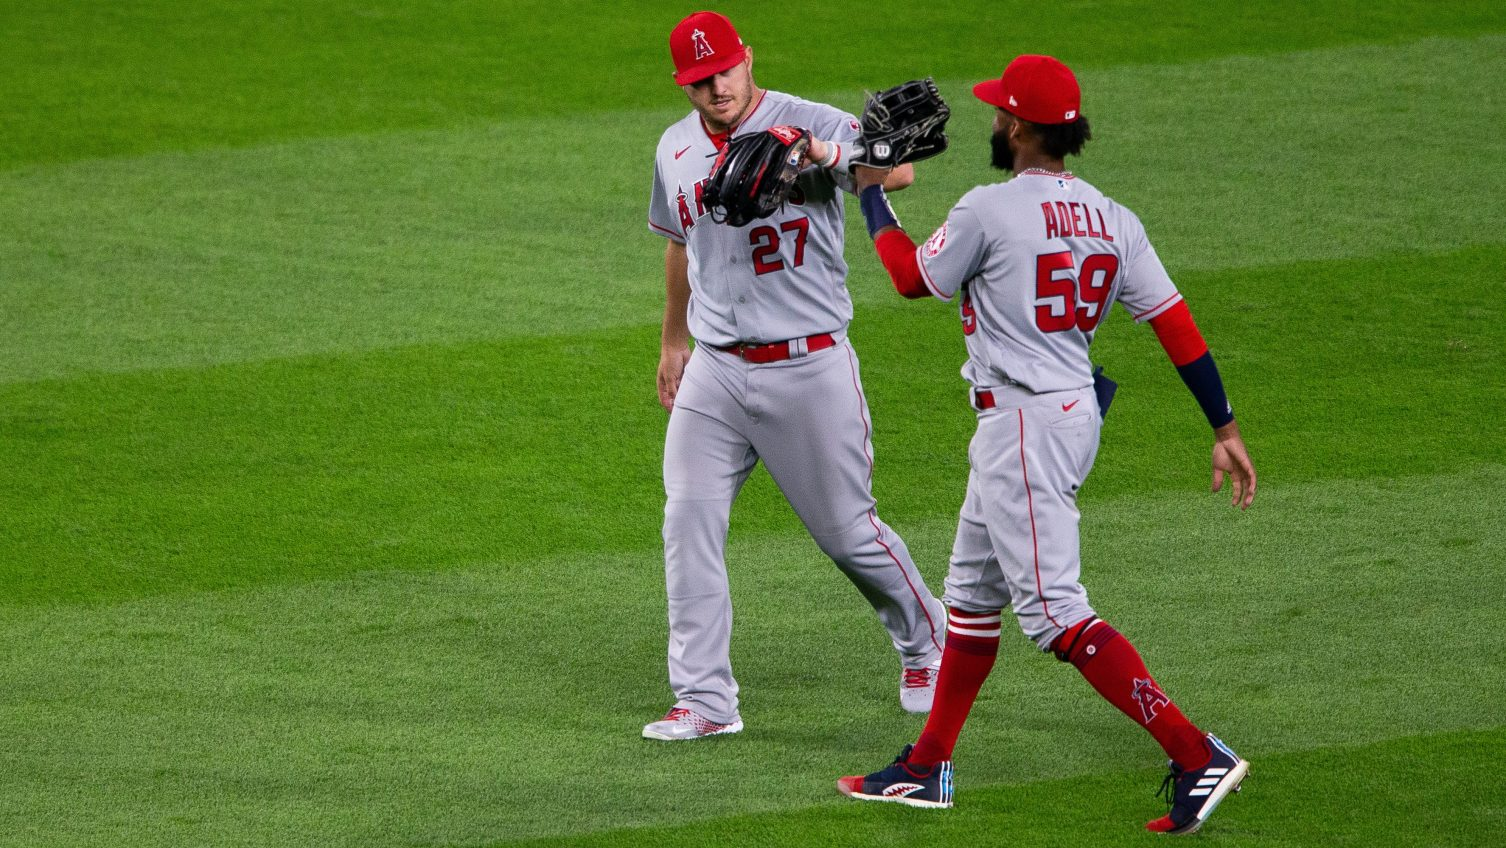 Angels outfielders Mike Trout, Jo Adell likely done for the year